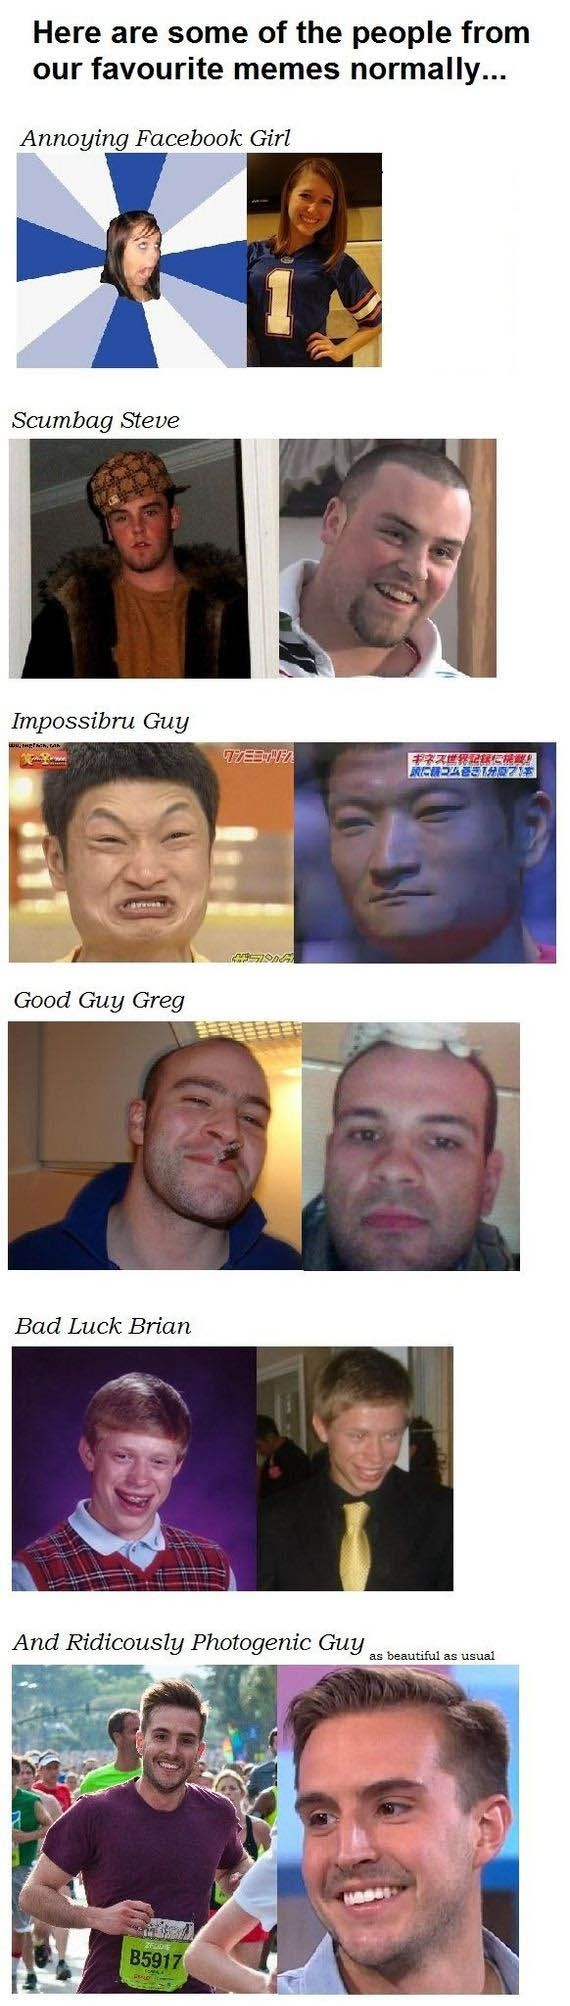 Memes In Real Life Photogenic Guy Memes In Real Life New Memes